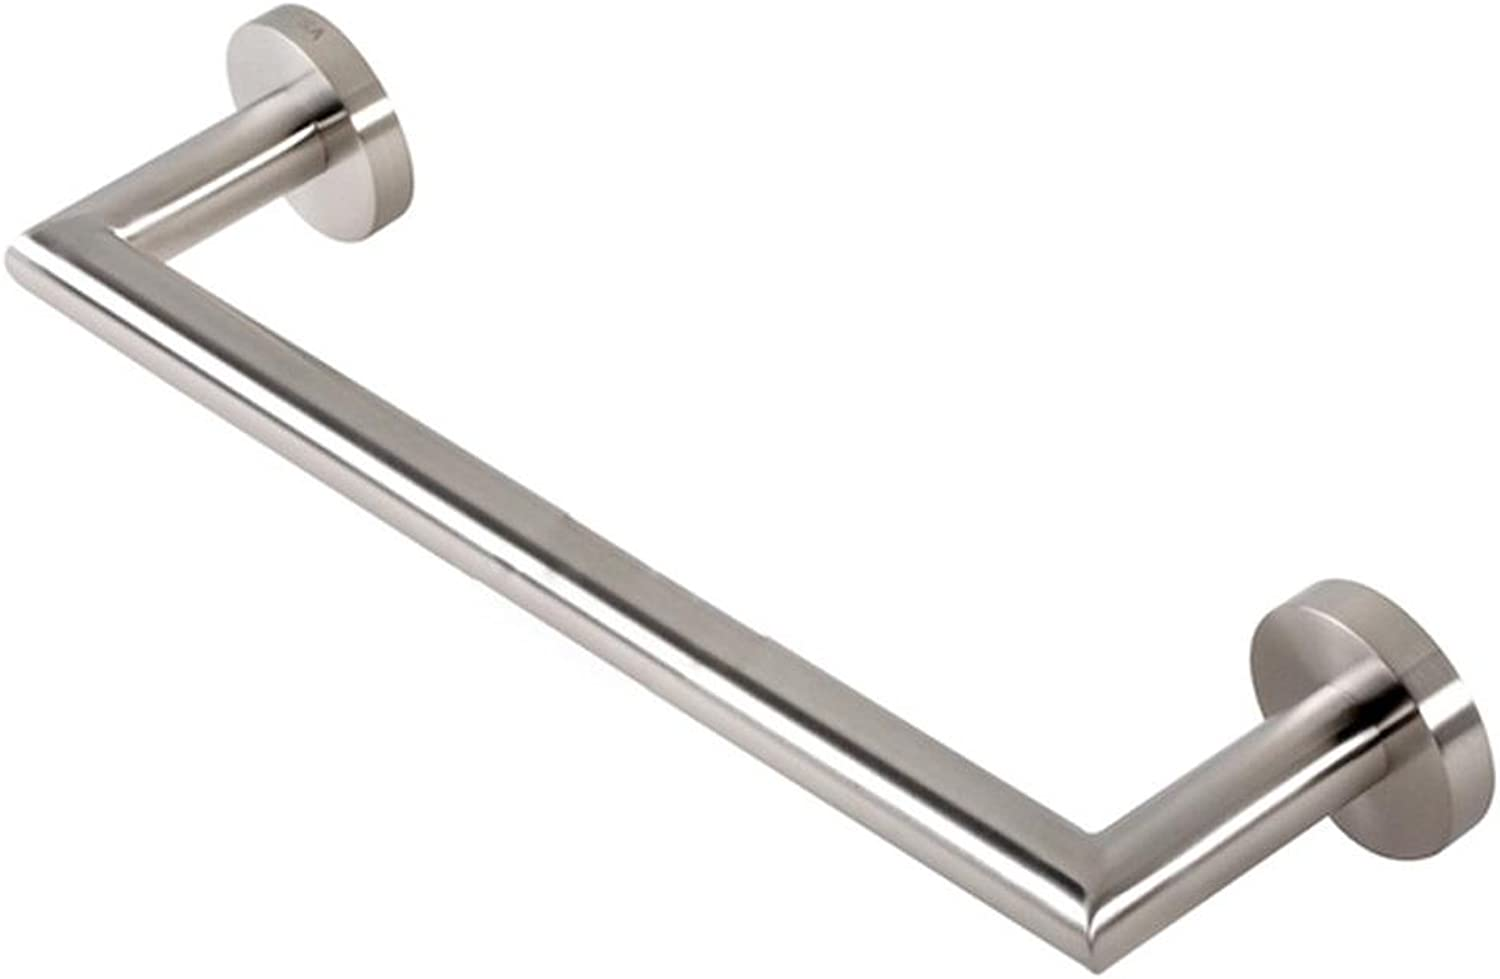 KHSKX Stainless steel 304 angle safety handrails, 32cm accessible toilet bathroom hand